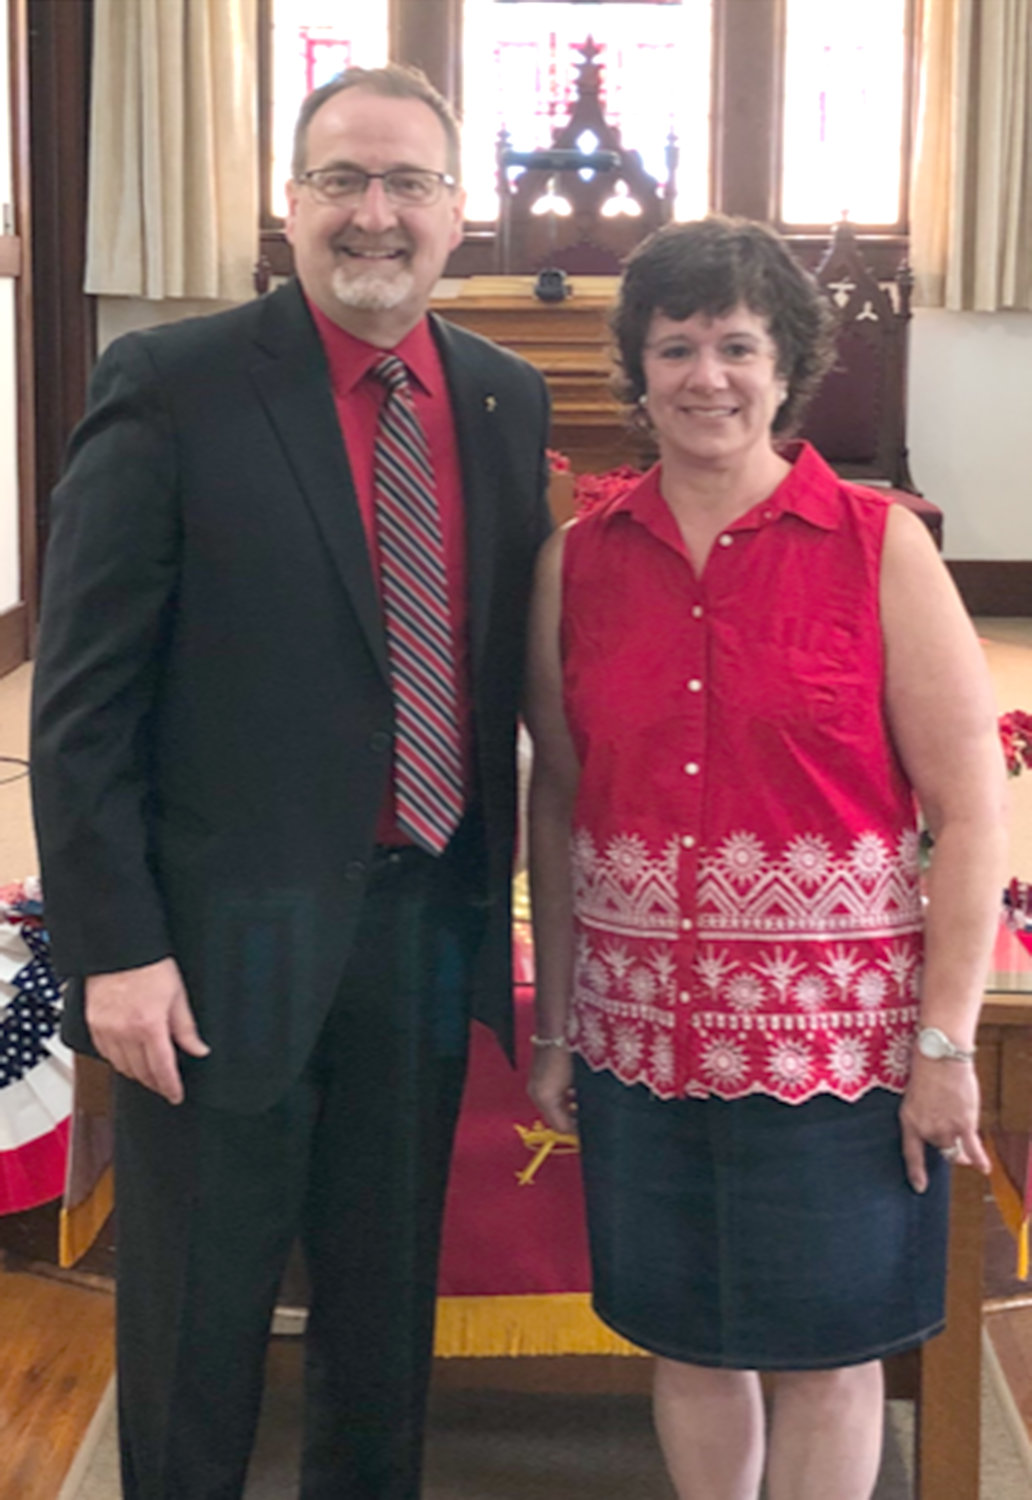 Servants Award — Rev. Robert Casler with honoree Sue Geer